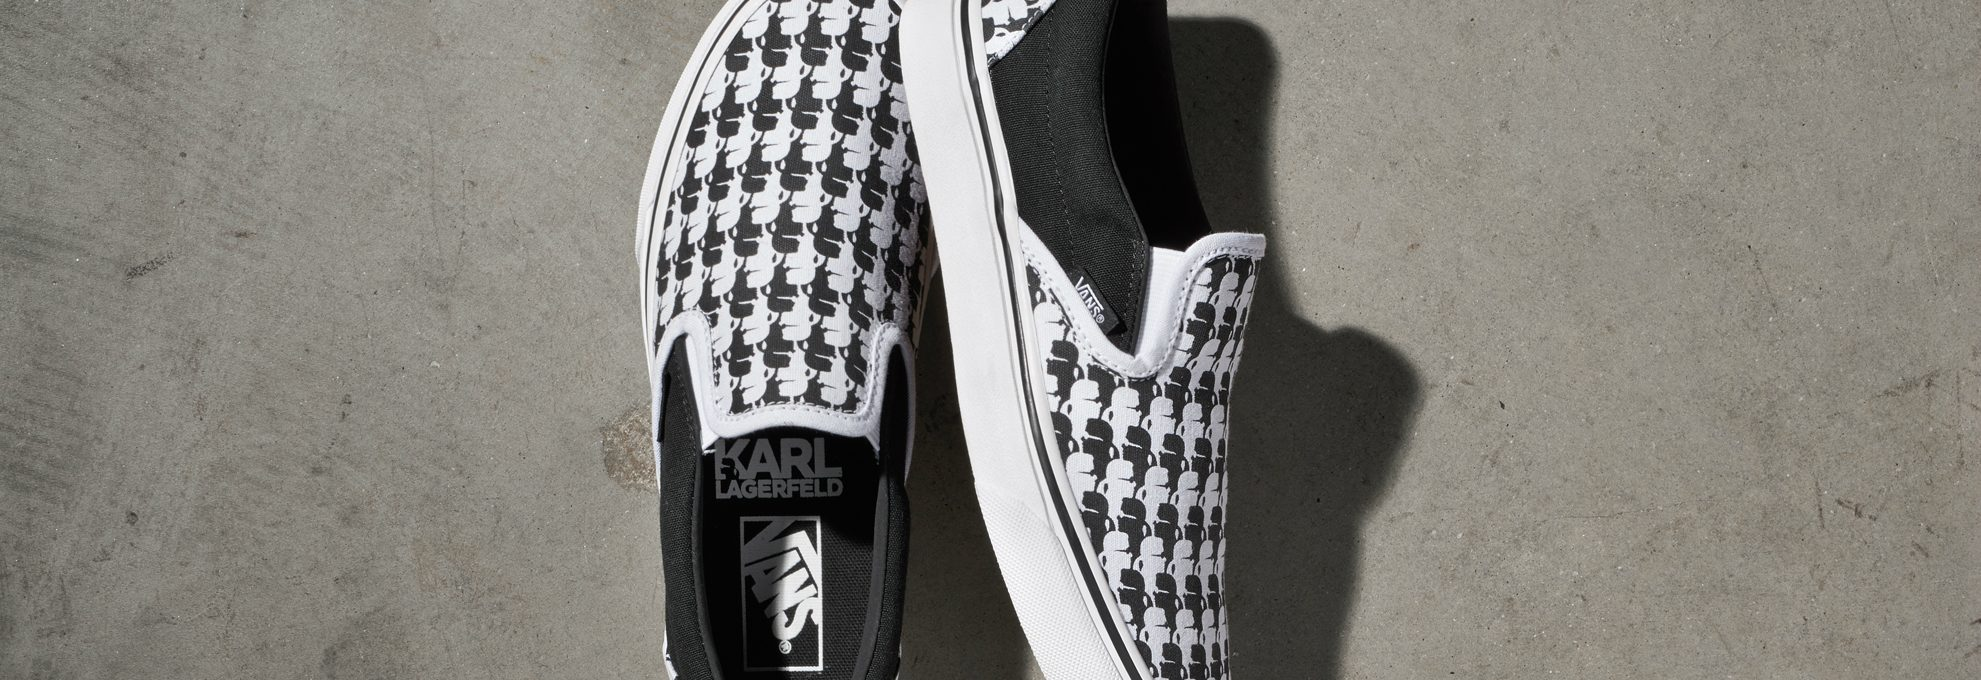 You Have to See the Karl Lagerfeld Collection for Vans *Off the Wall* Fall 2017 > Daily Design News > The latest on the best design trends and events in the world > #karlagerfeld #vansoffthewall #dailydesignews